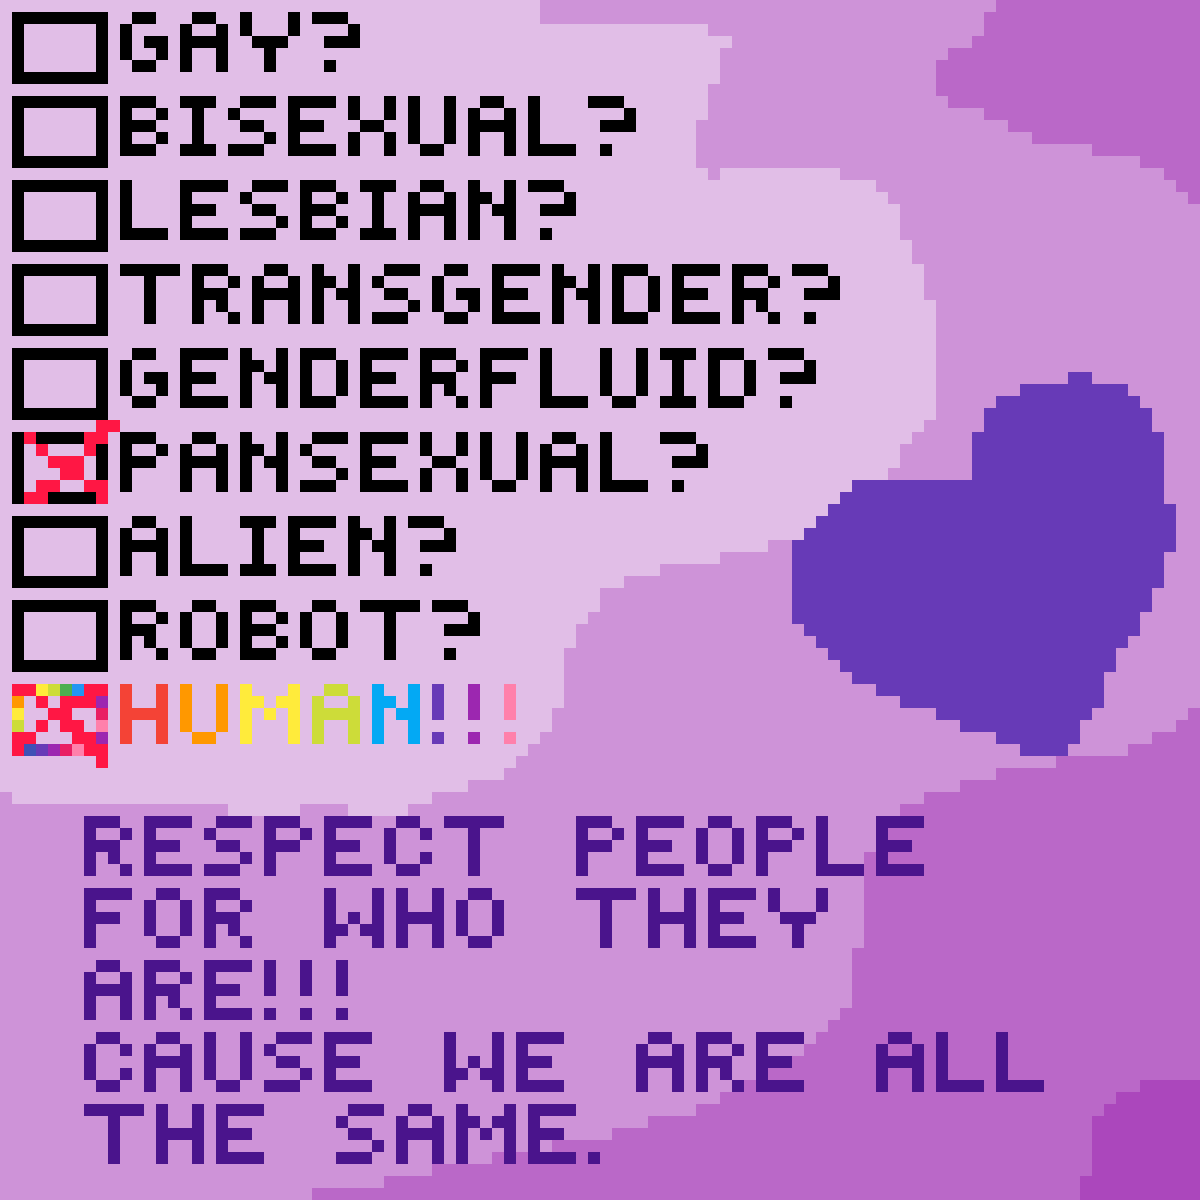 PRIDE!!!! by Depressed-Cats